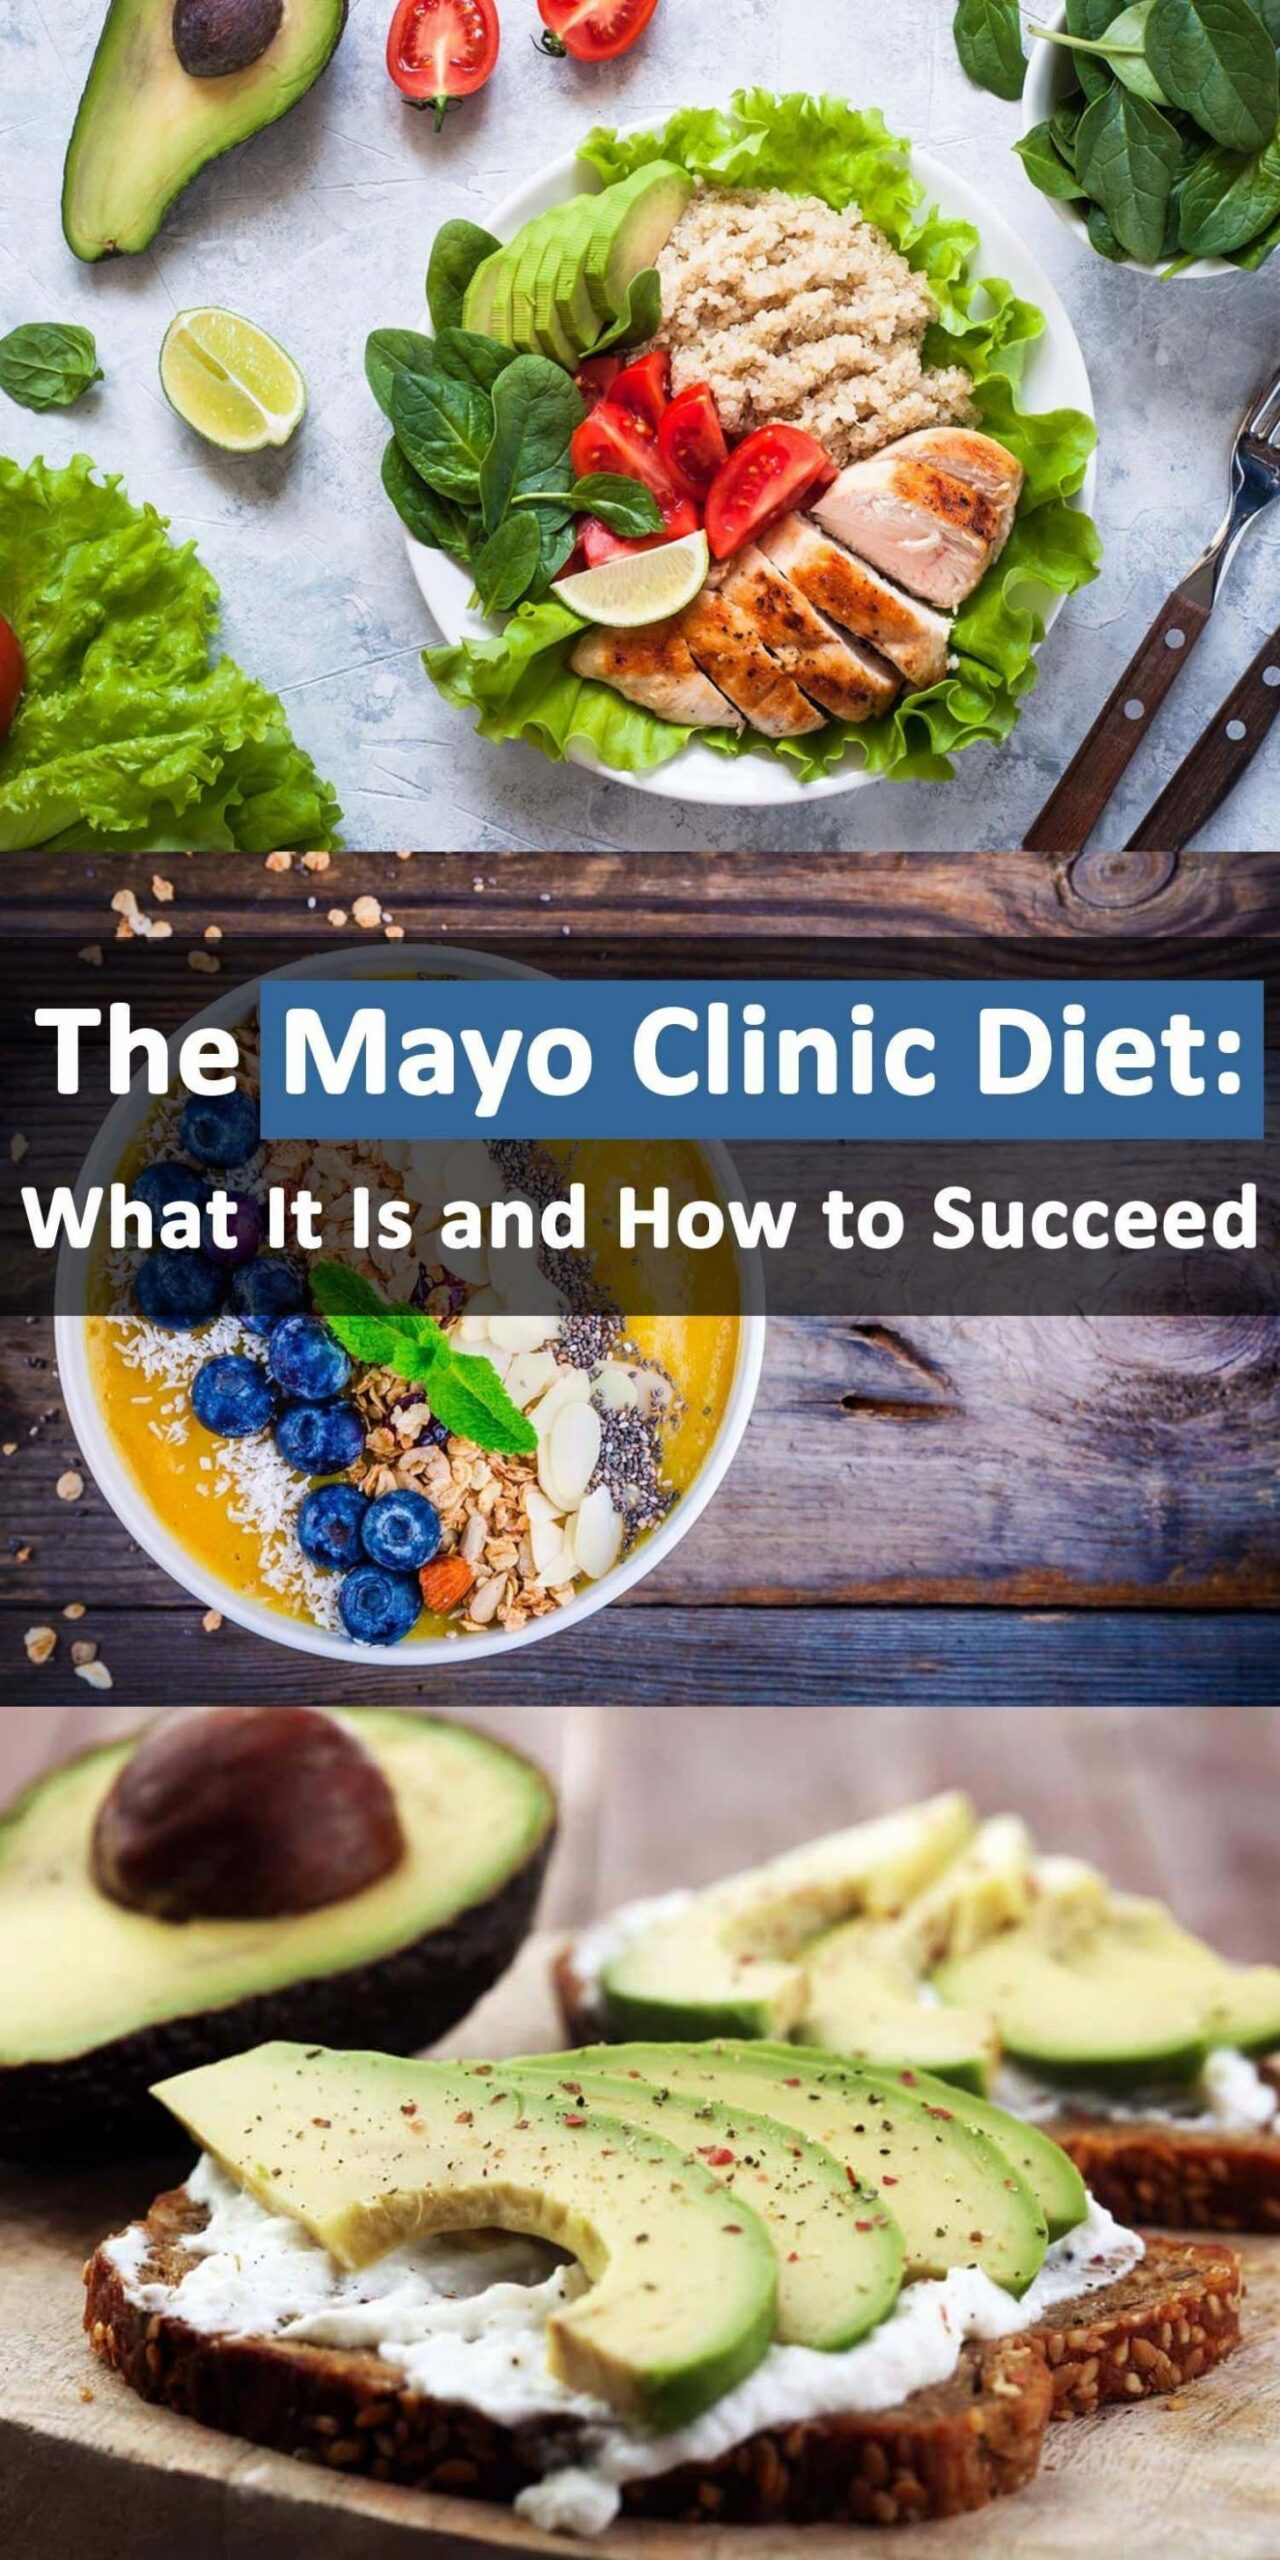 Mayo Clinic Diet Recipes in 12 (With images) | Mayo clinic diet ..